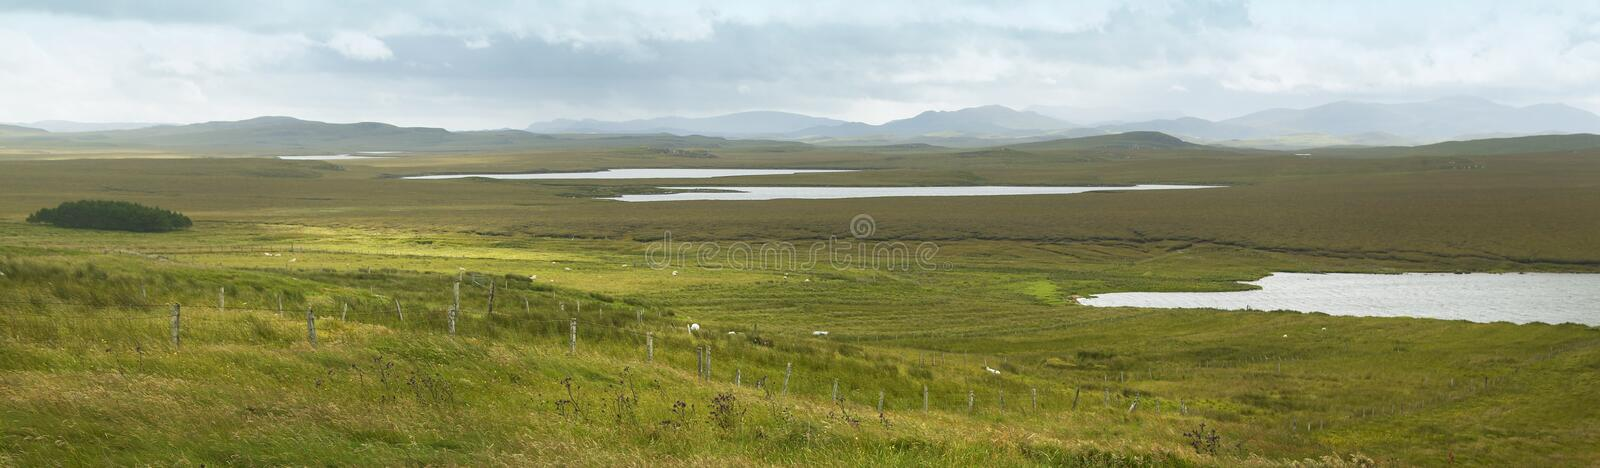 Scottish panoramic landscape with loch and moorland. Lewis isle. UK royalty free stock images